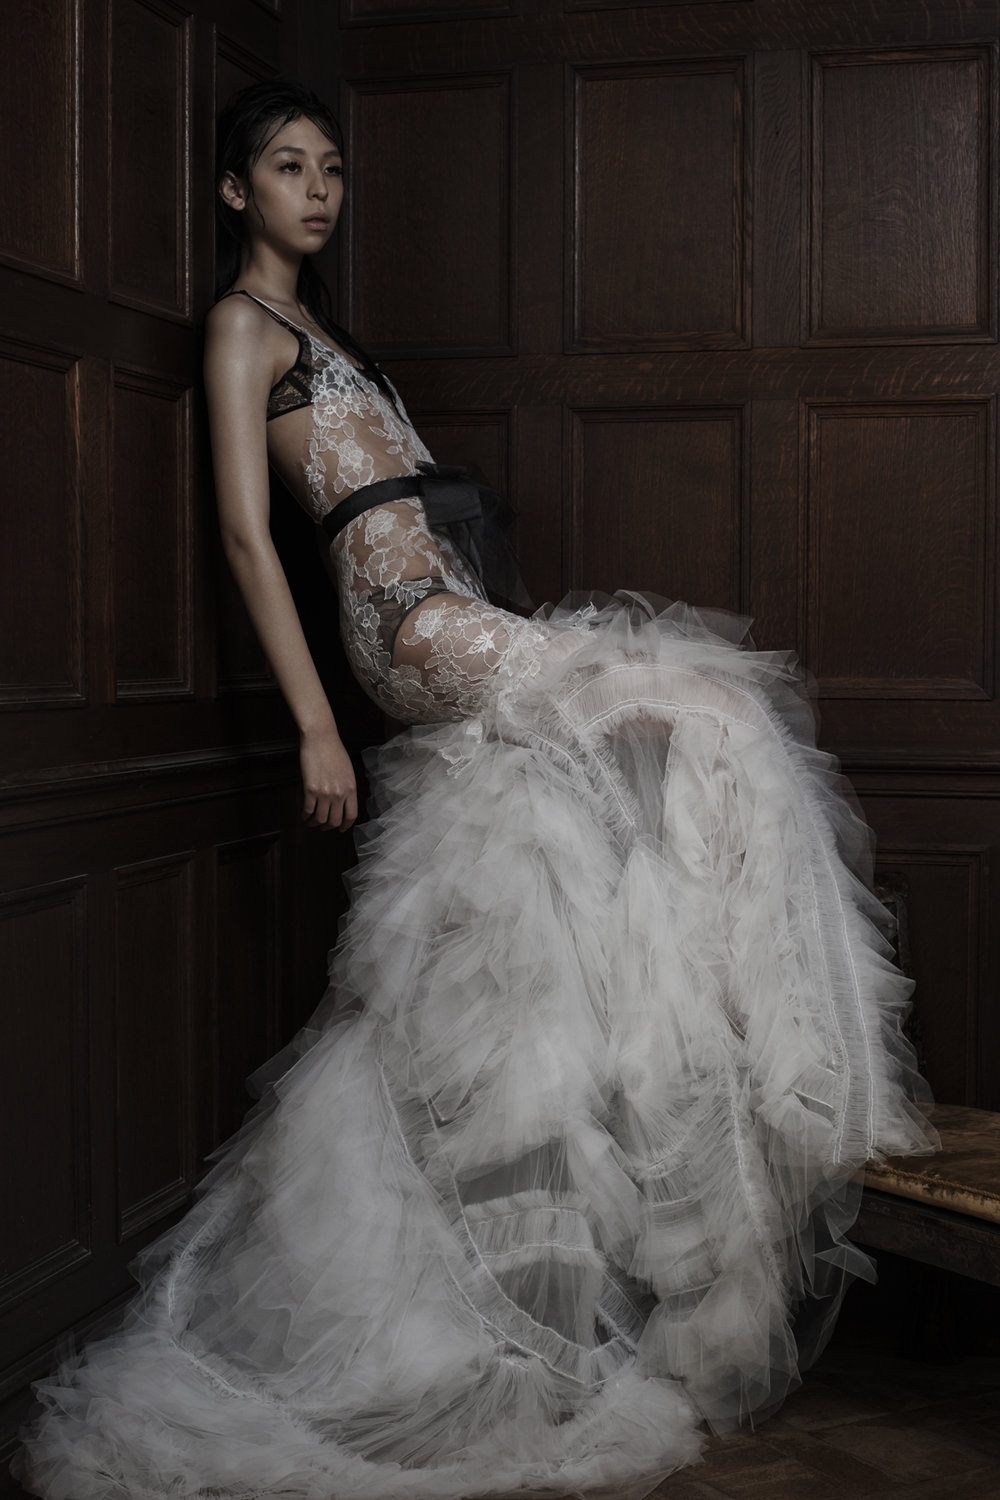 Season: Spring 2016    Gown name: Esme    Description: A light ivory V-neck hand applique Chantilly lace gown with pleated tulle mermaid skirt and plunging back accented with stretch ribbon straps.